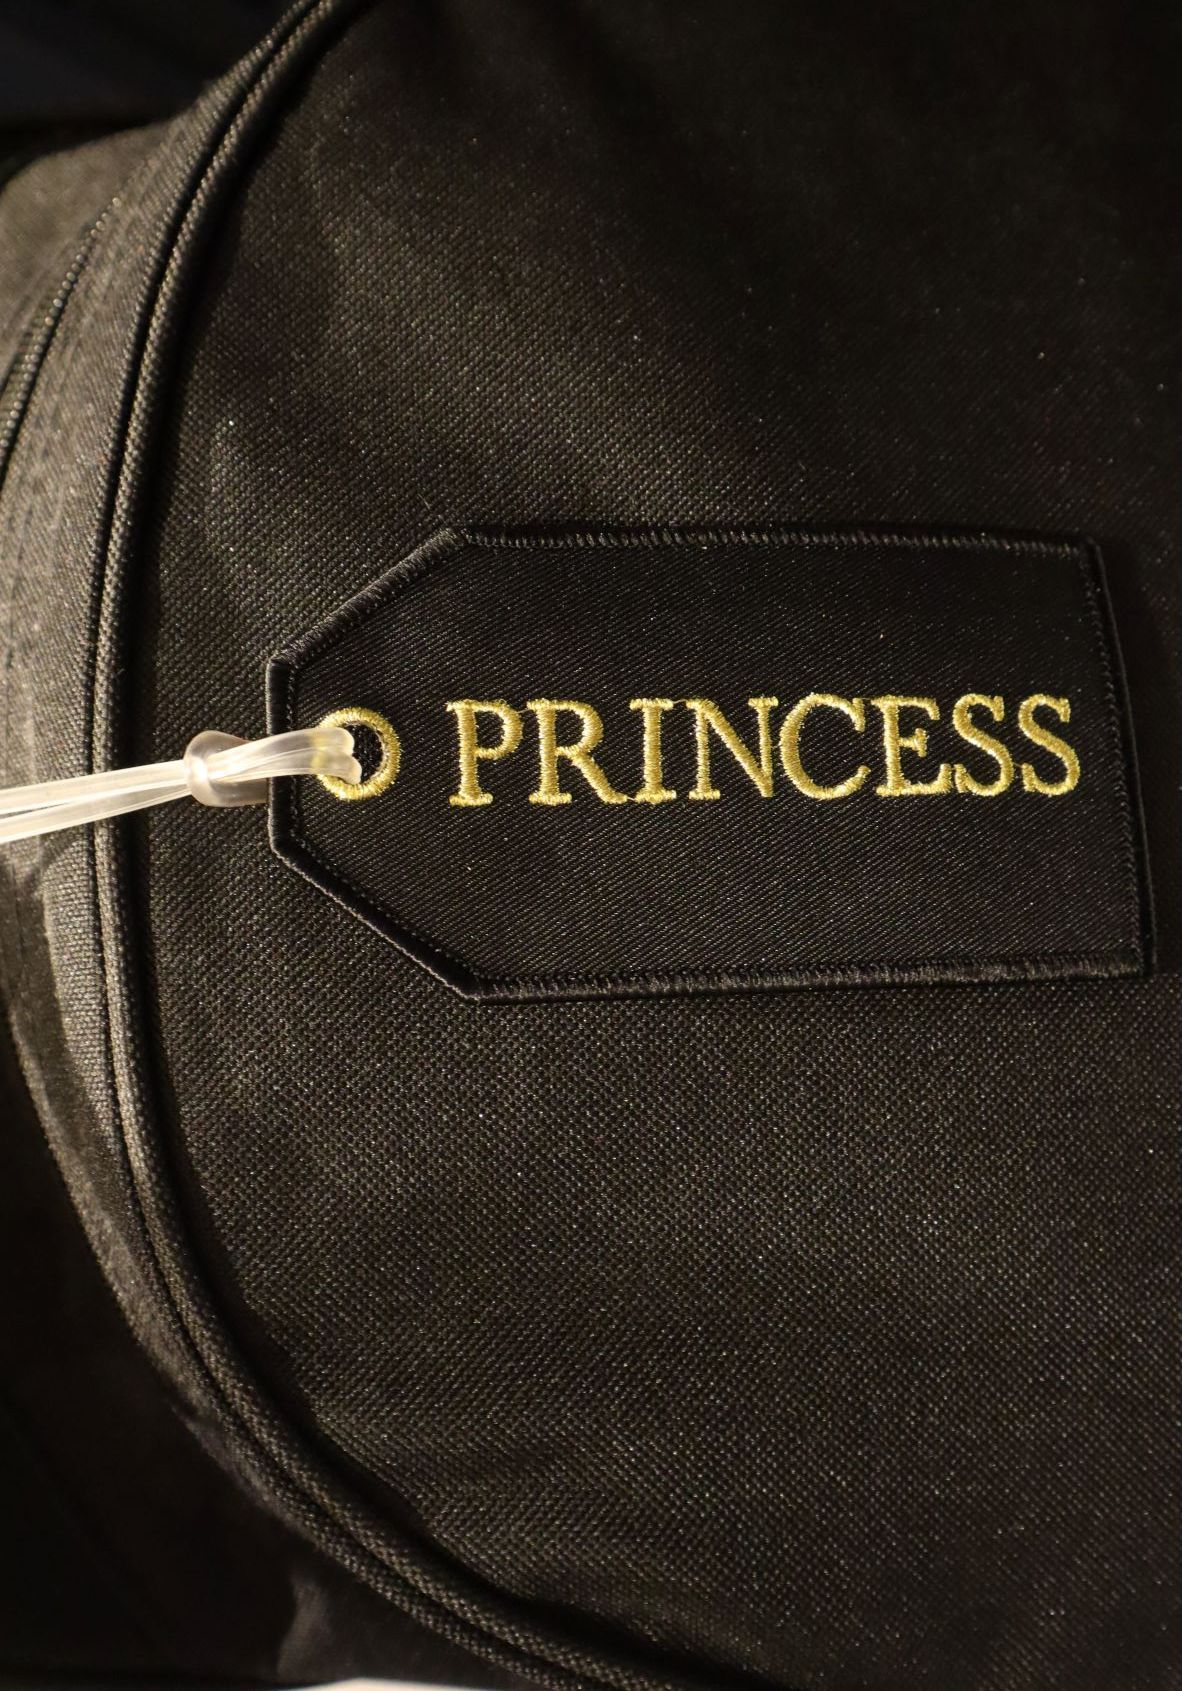 Princess - Bag Tag